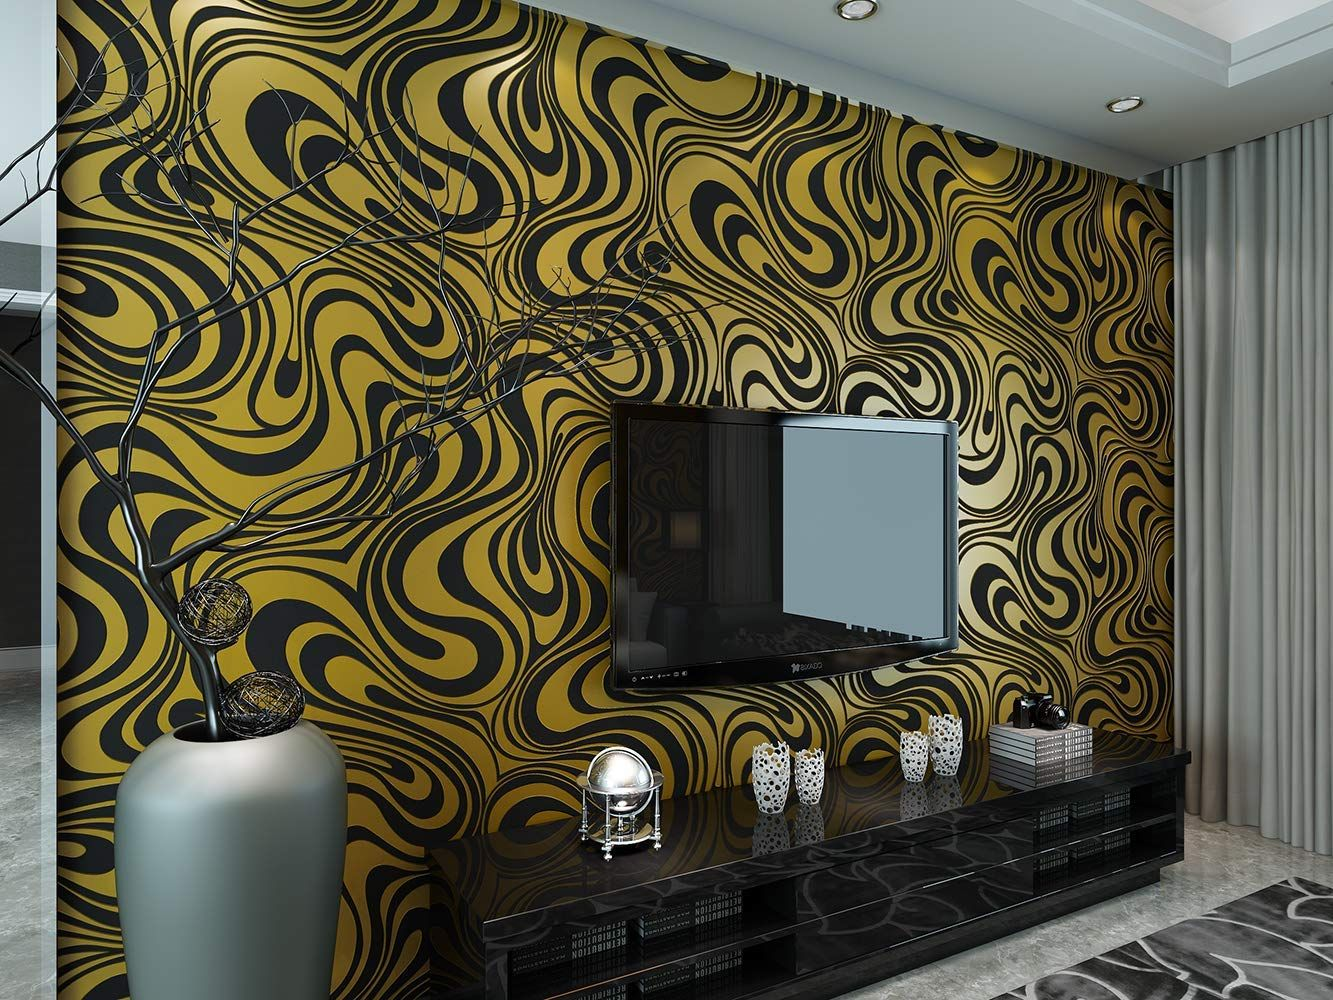 Ketian Modern Luxury 3d Abstract Curve Wallpaper Non Woven Flocking Strips For Living Room Bedroom Wallpaper Roll 0 7m 2 29 W X 8 4m 27 56 L 5 88 Stue